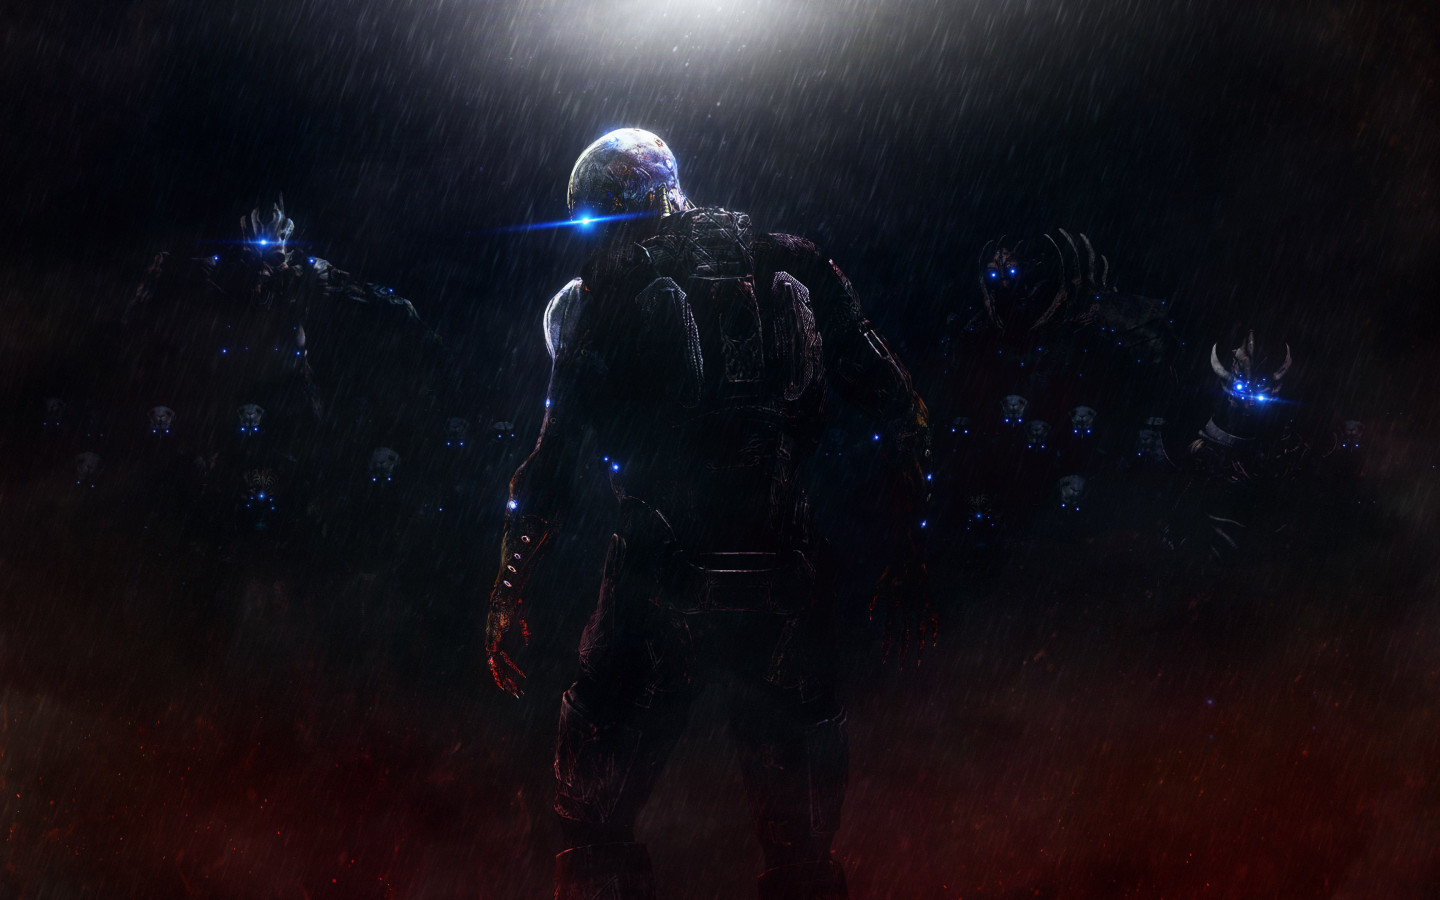 Mass Effect: Ascension wallpaper 1440x900